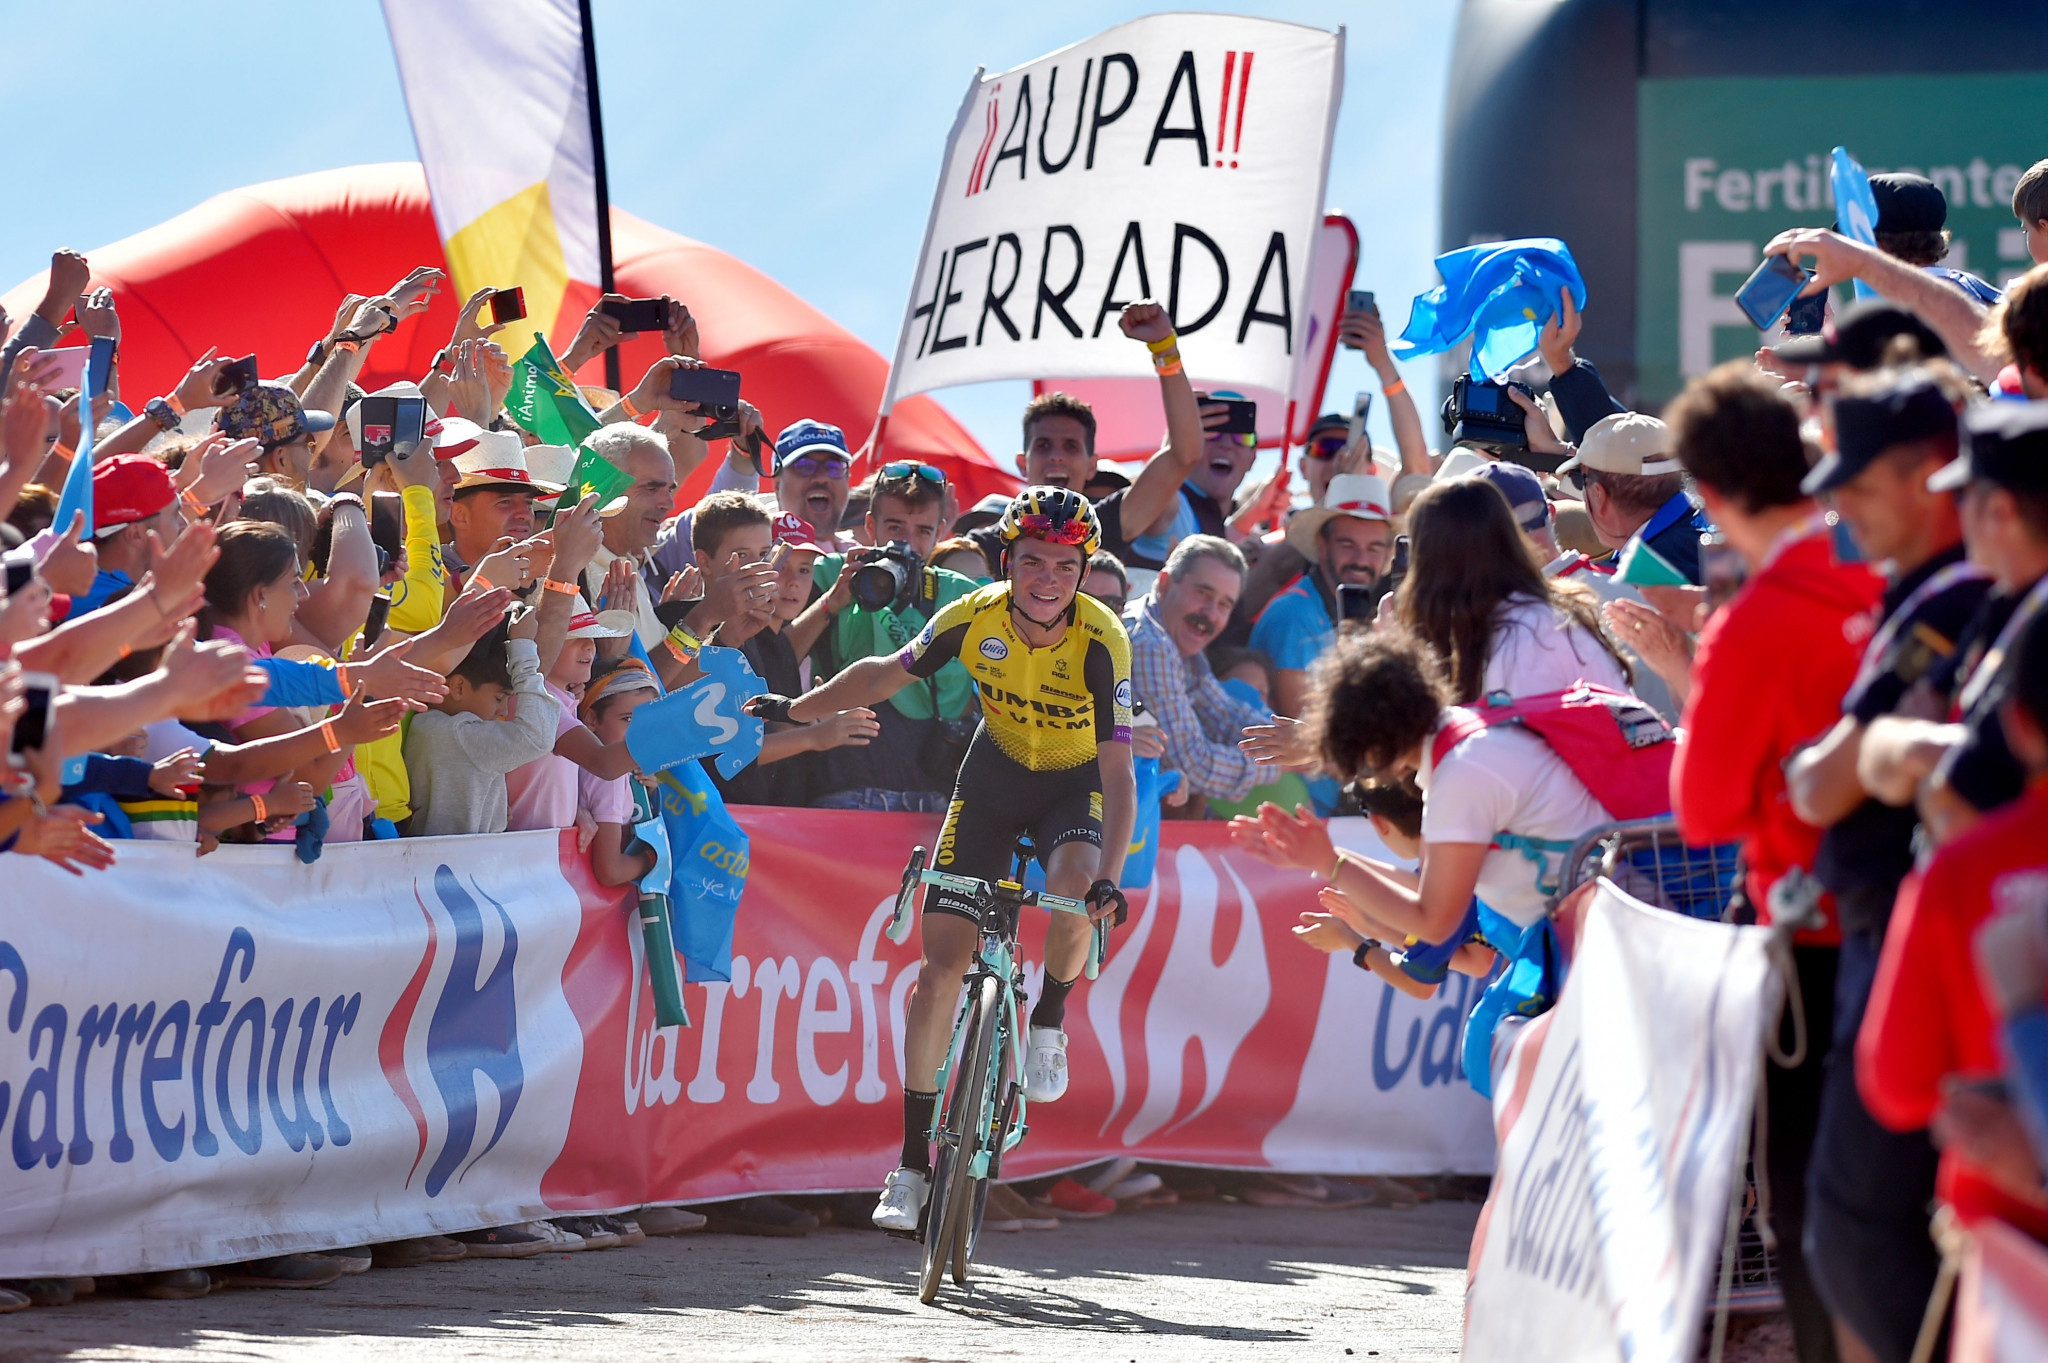 Kuss clinches stage 15 win at Vuelta a España as Roglic and Valverde gain time